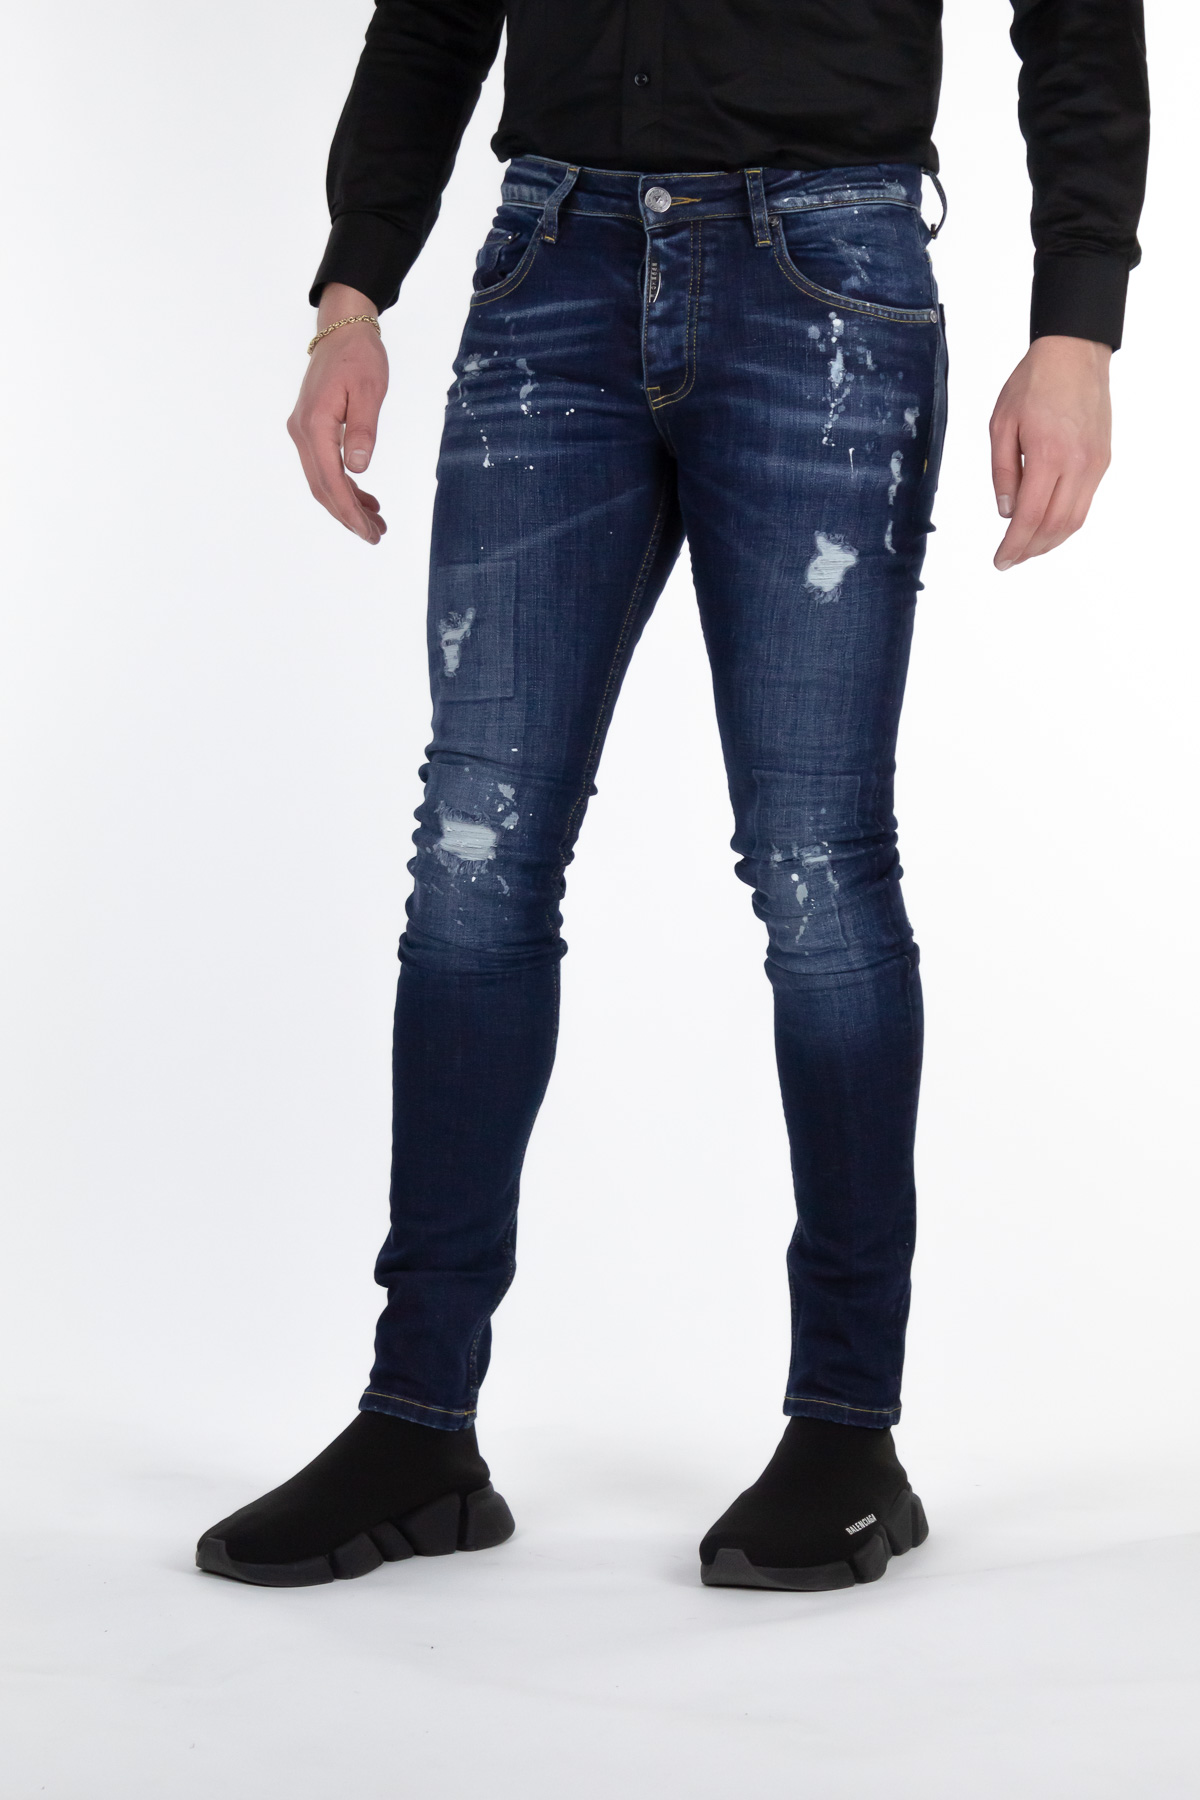 Richesse Florence Blue Jeans 2236-3